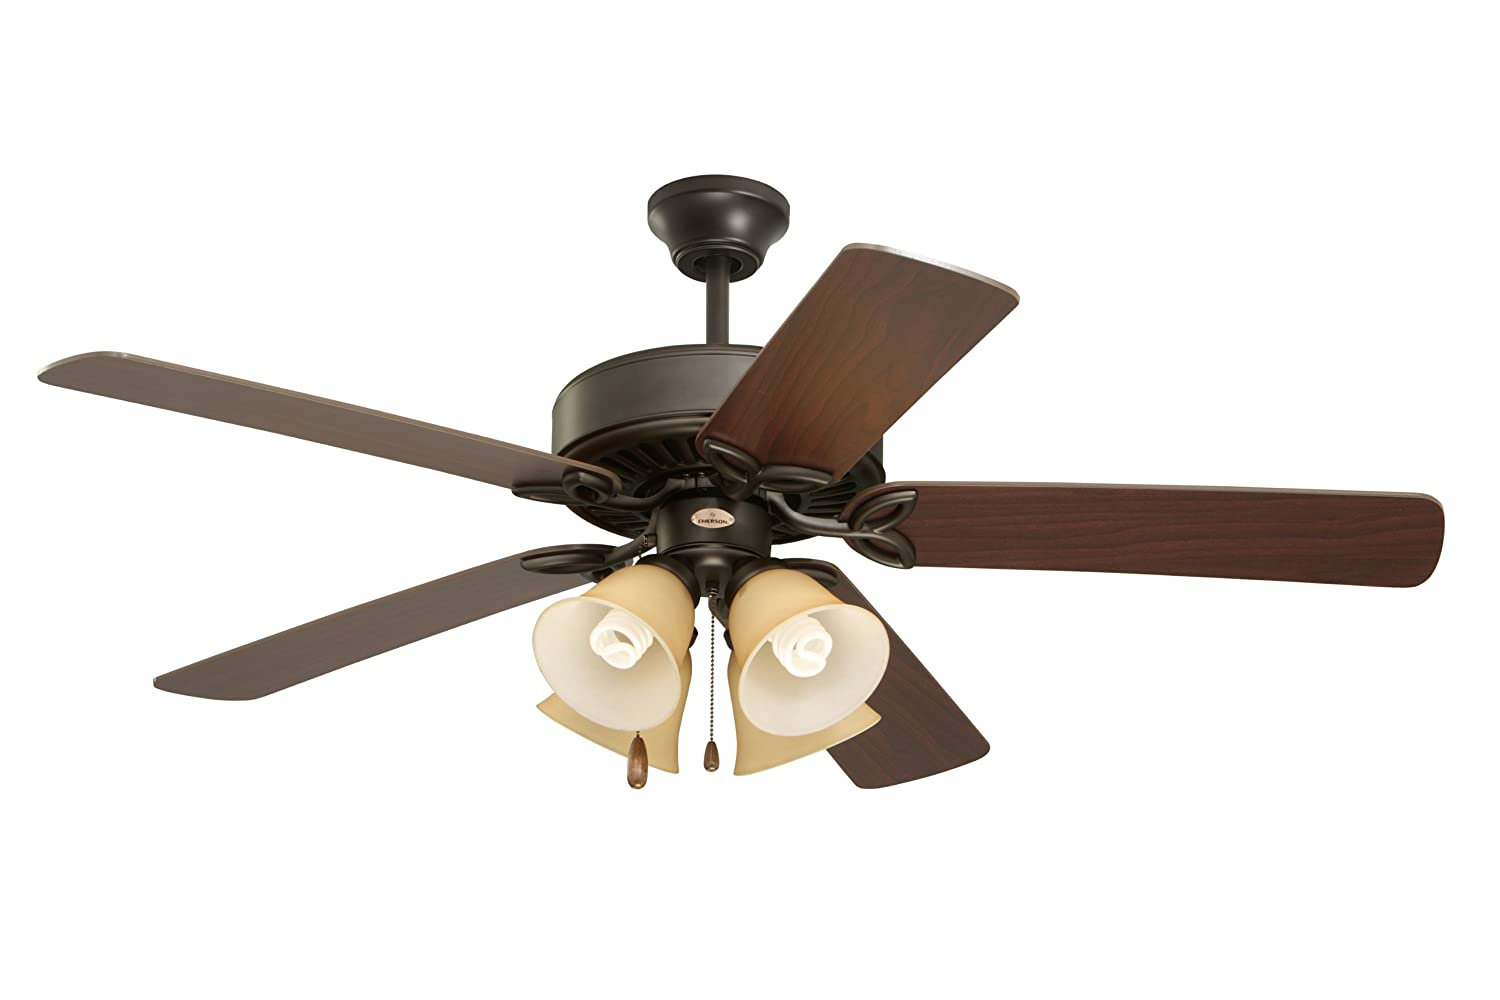 Emerson Ceiling Fans CF711ORS Pro Series II Indoor Ceiling Fan With Light, 50-Inch Blades, Oil Rubbed Bronze Finish